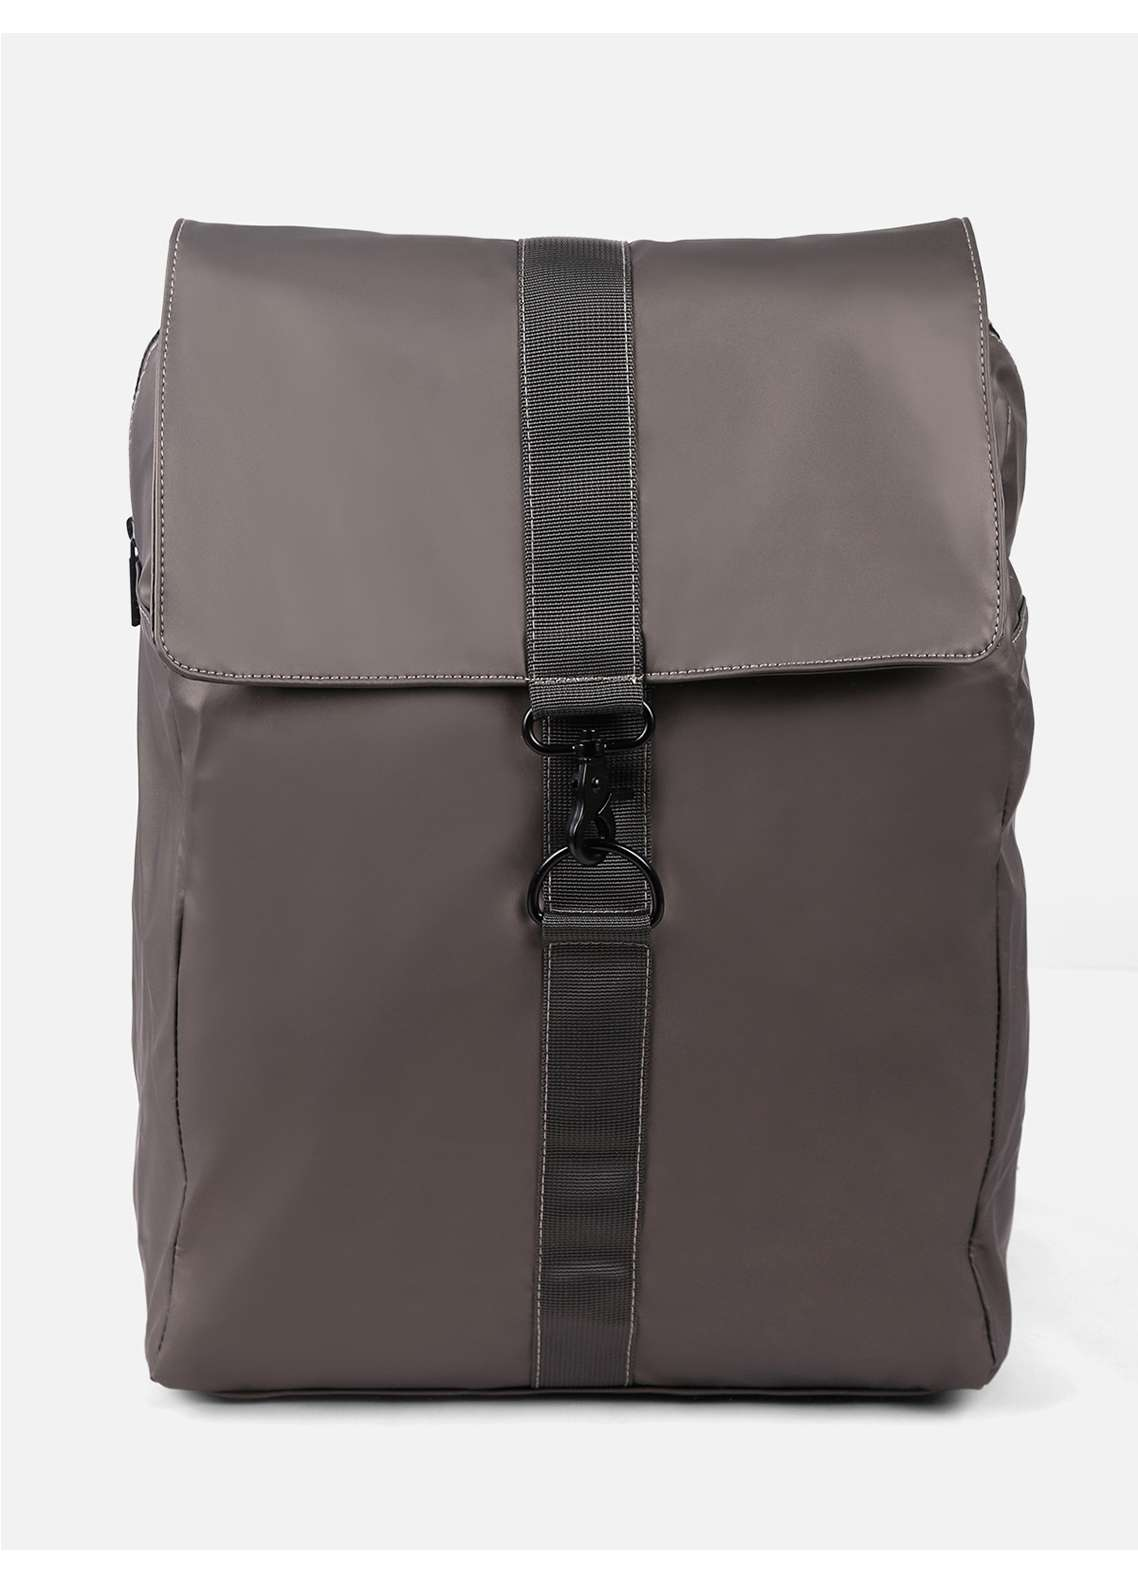 Furor Mix Backpack Bags for Unisex - Olive with Plain Texture